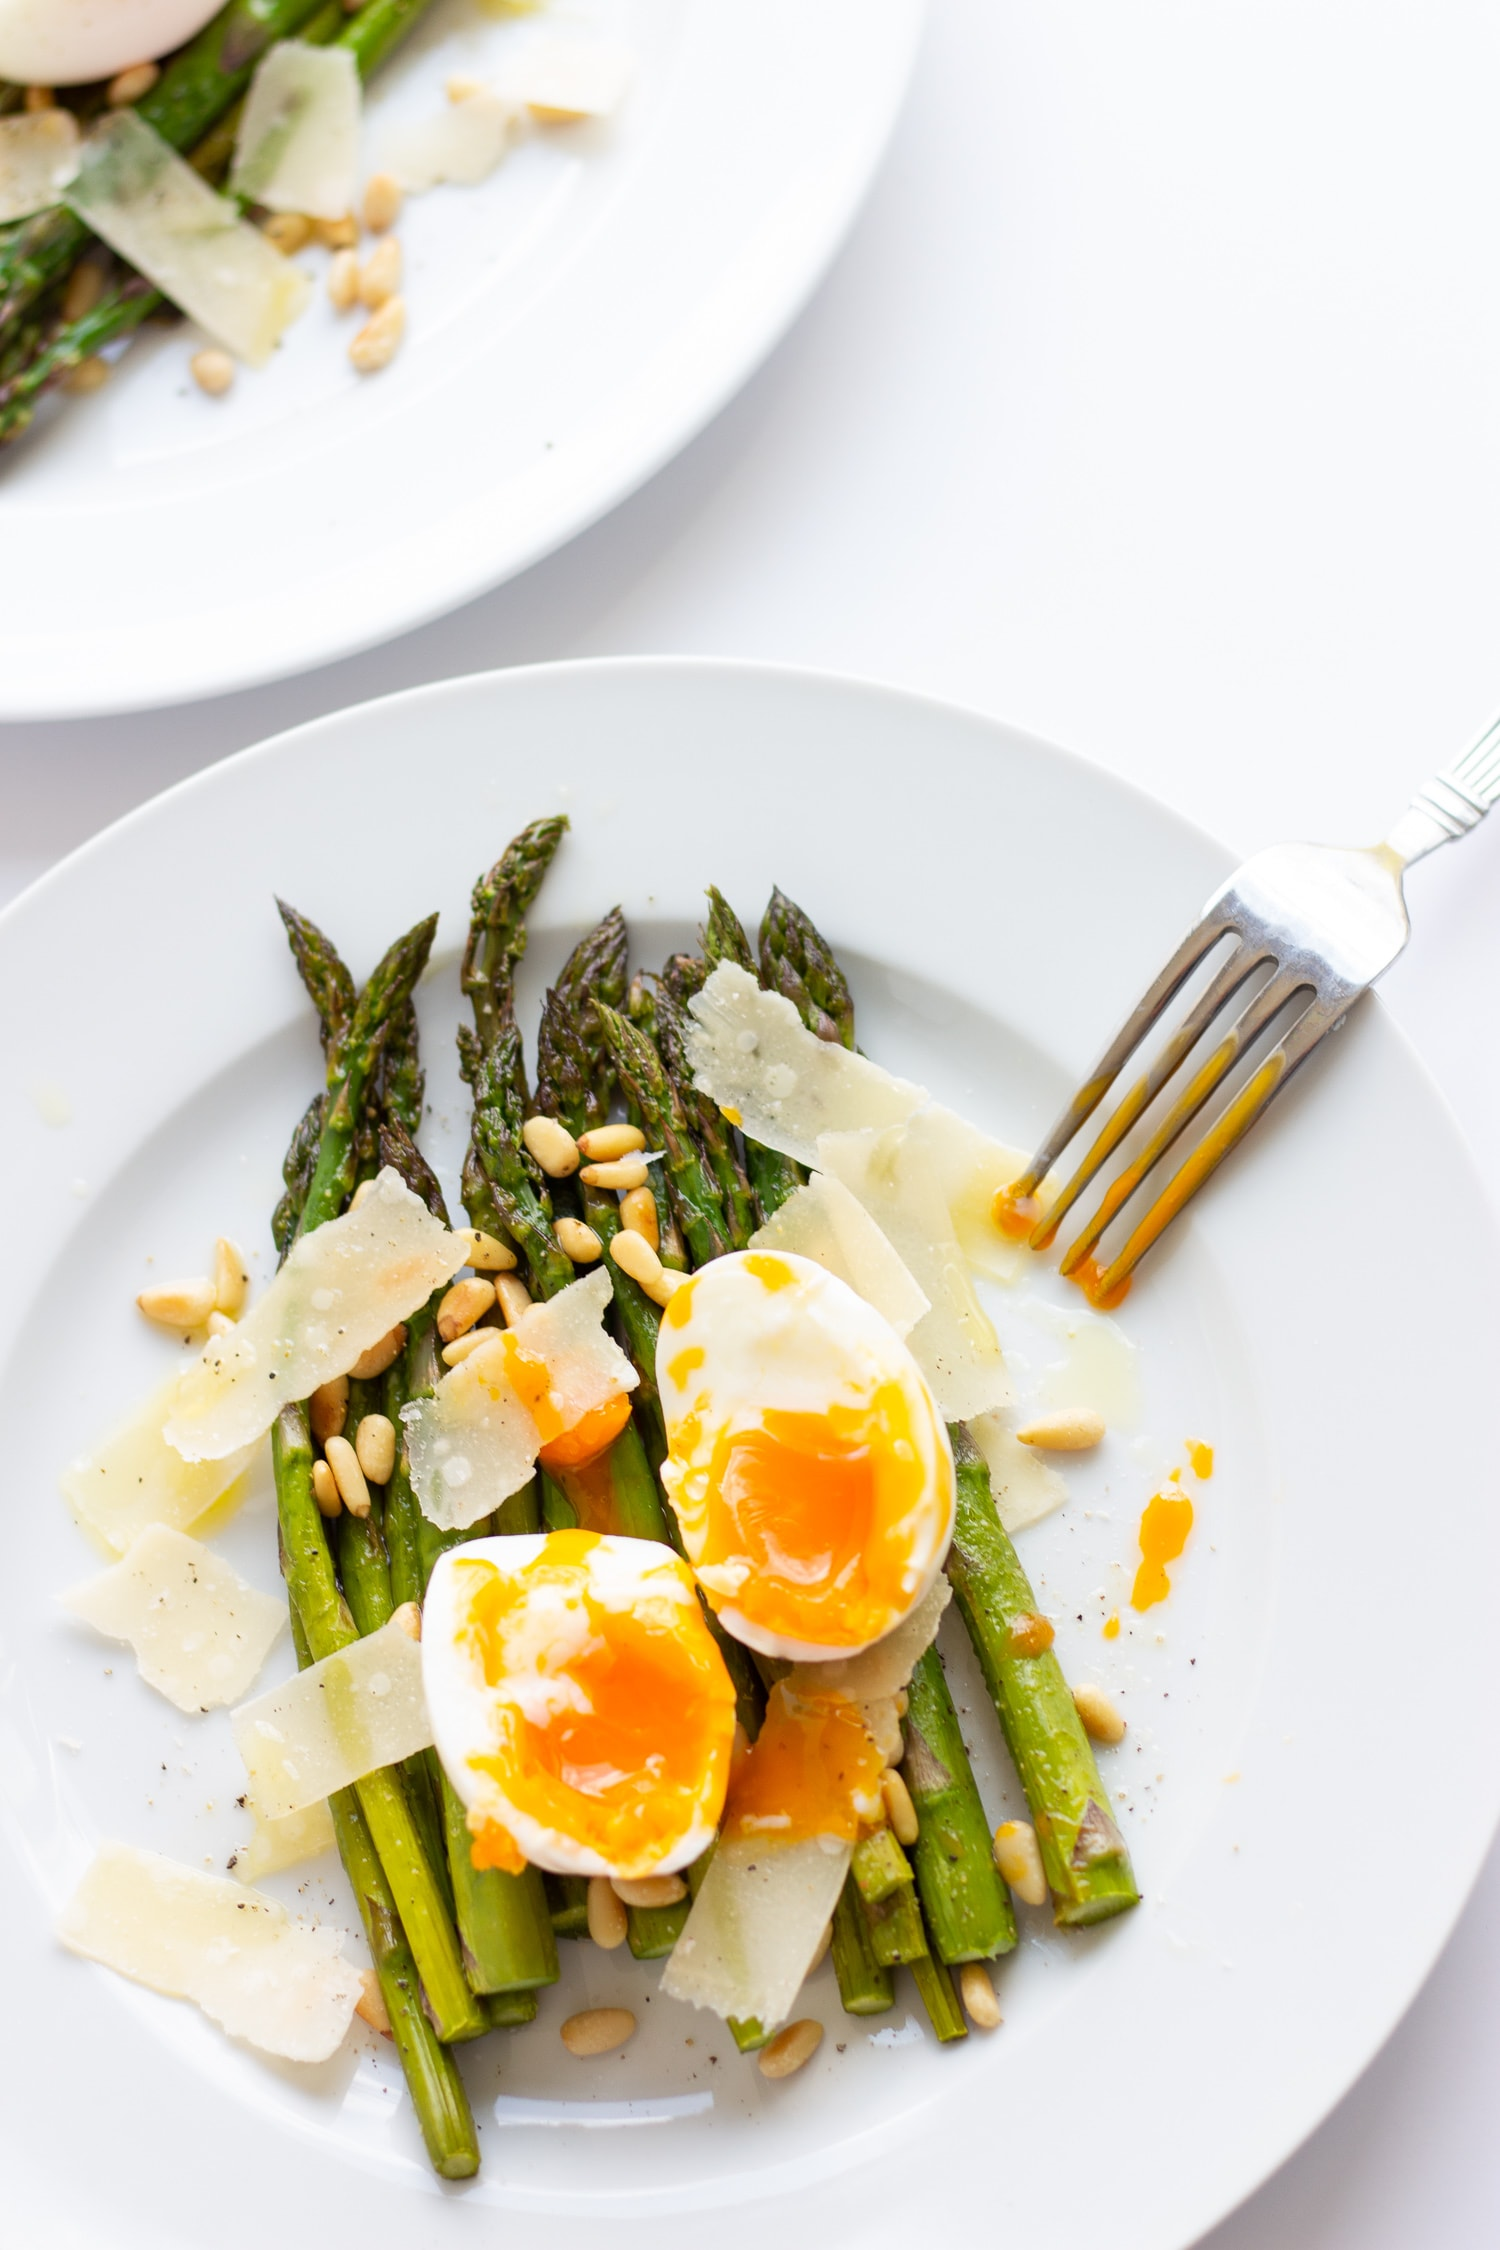 roasted asparagus on a white plate topped with soft boiled egg, parmesan shavings and toasted pine nuts with fork on the side